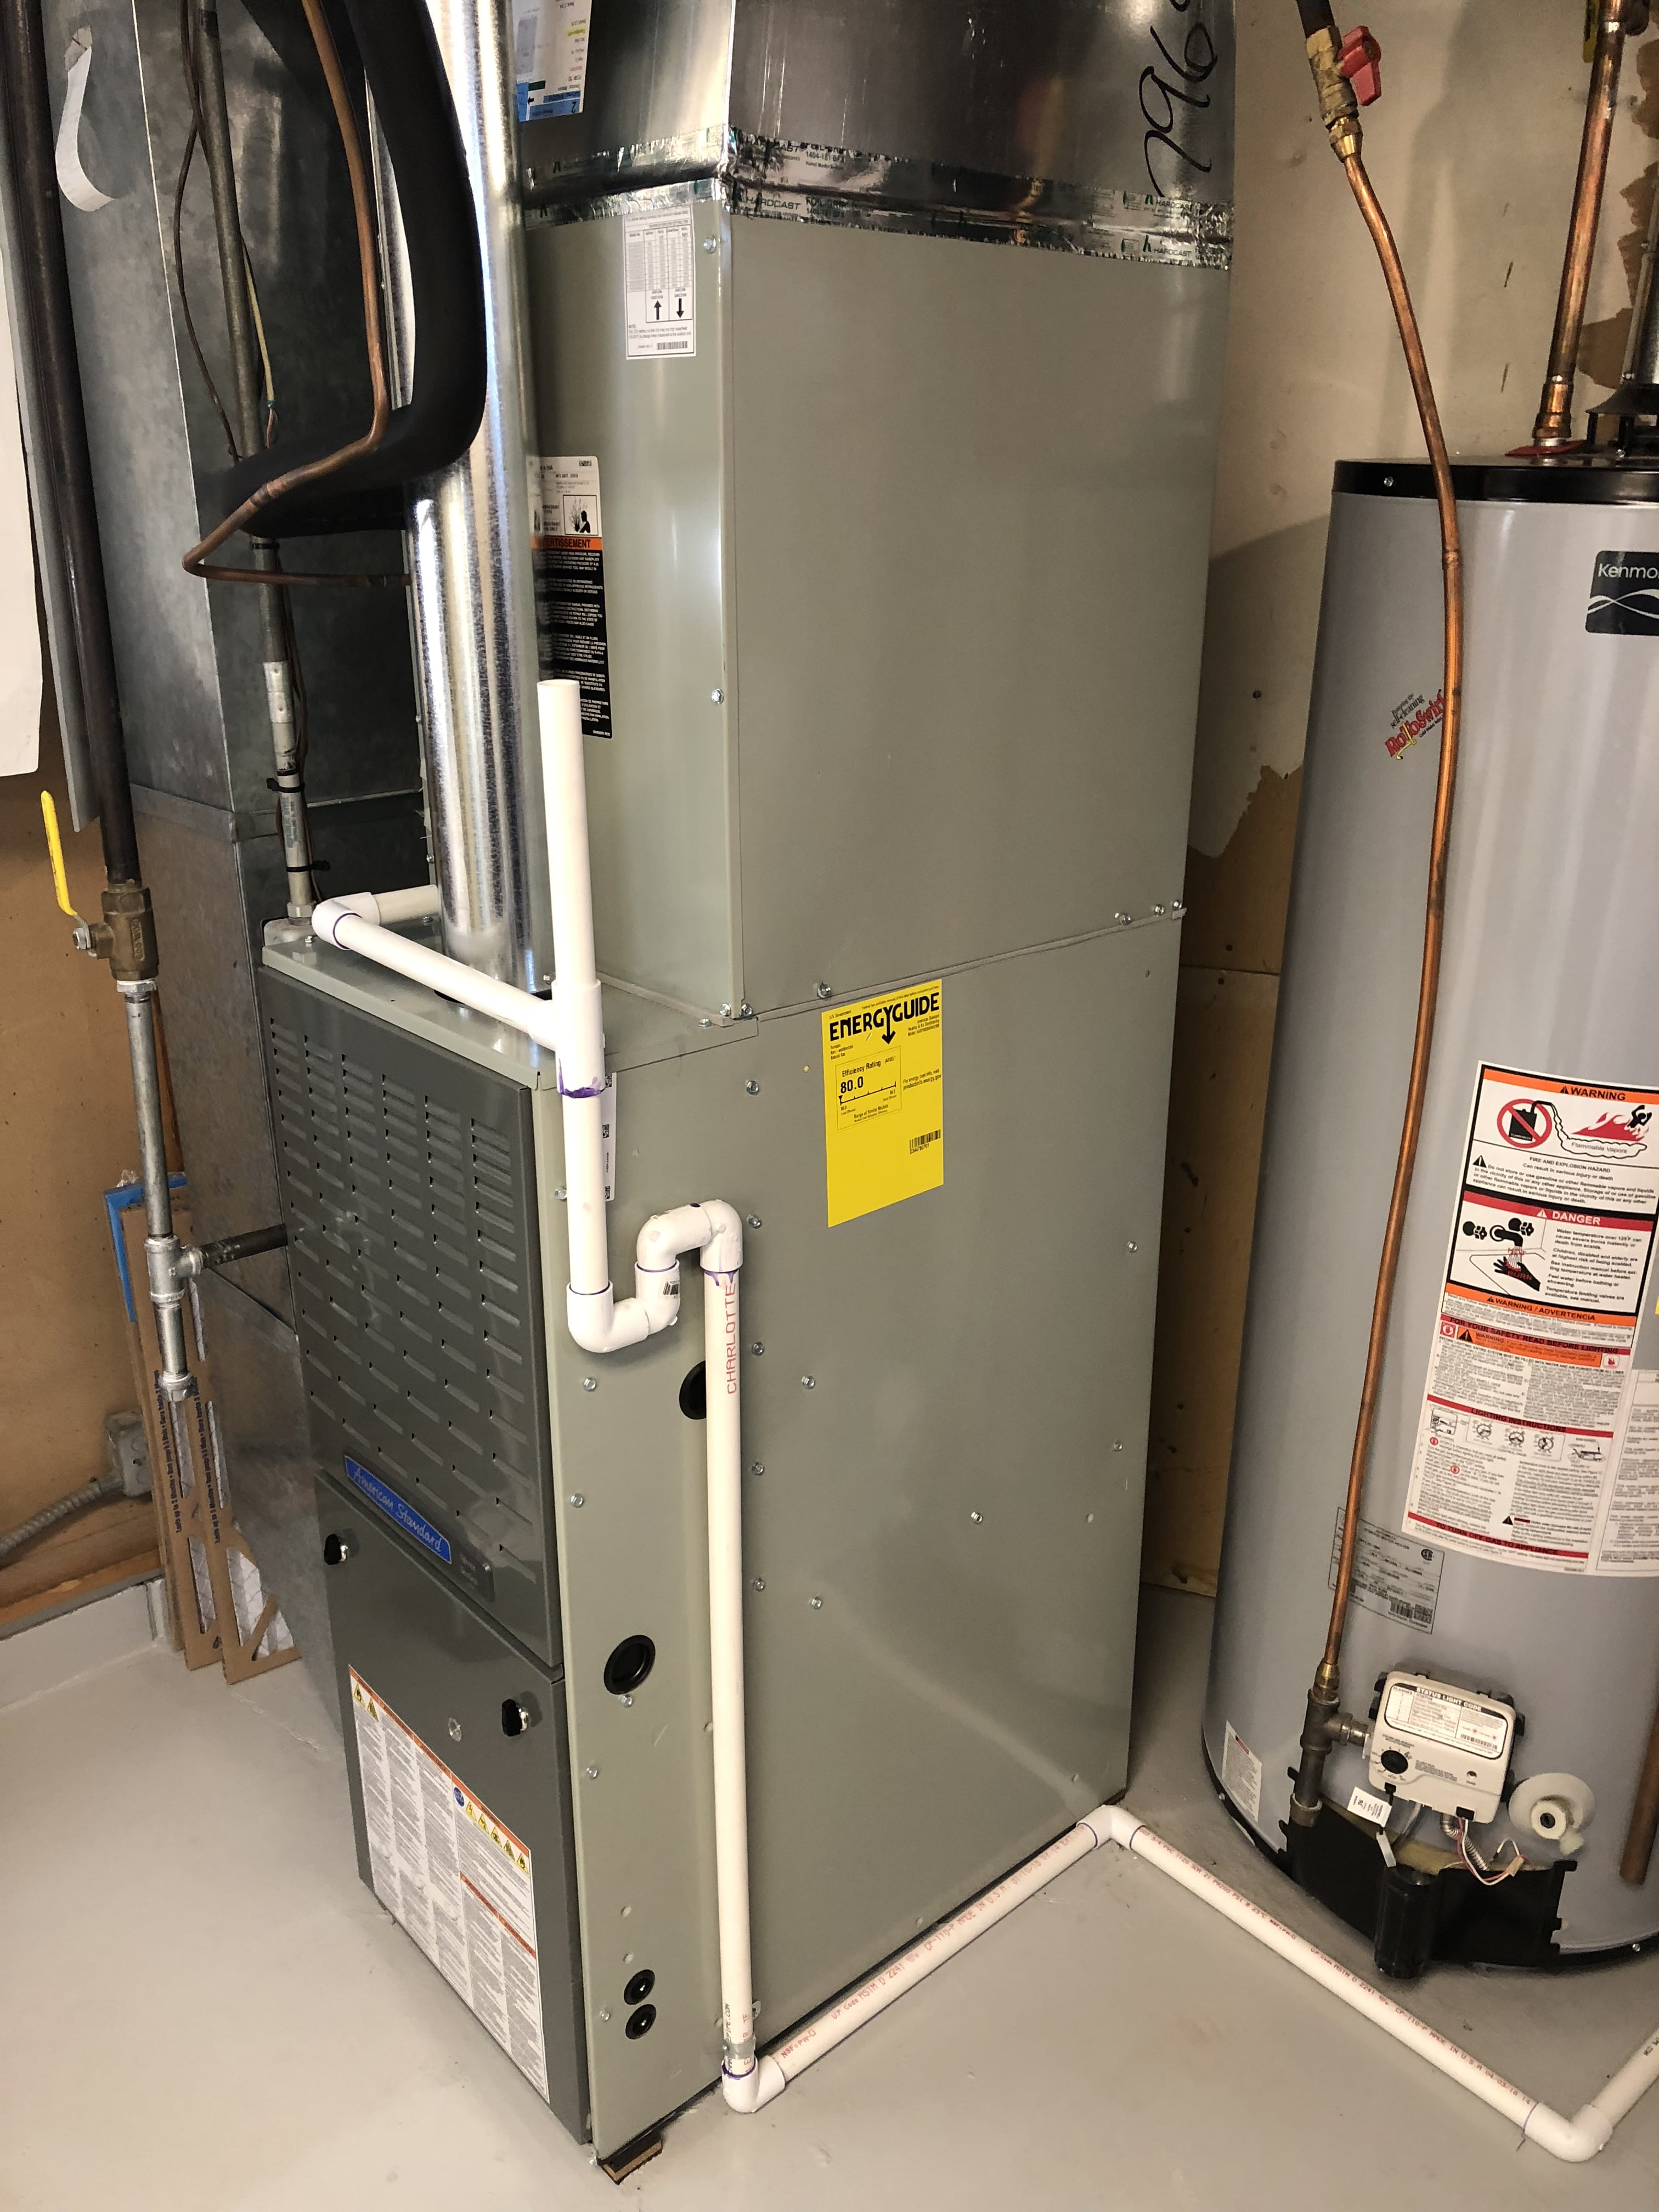 Call for reliable Furnace replacement in Burnsville MN.